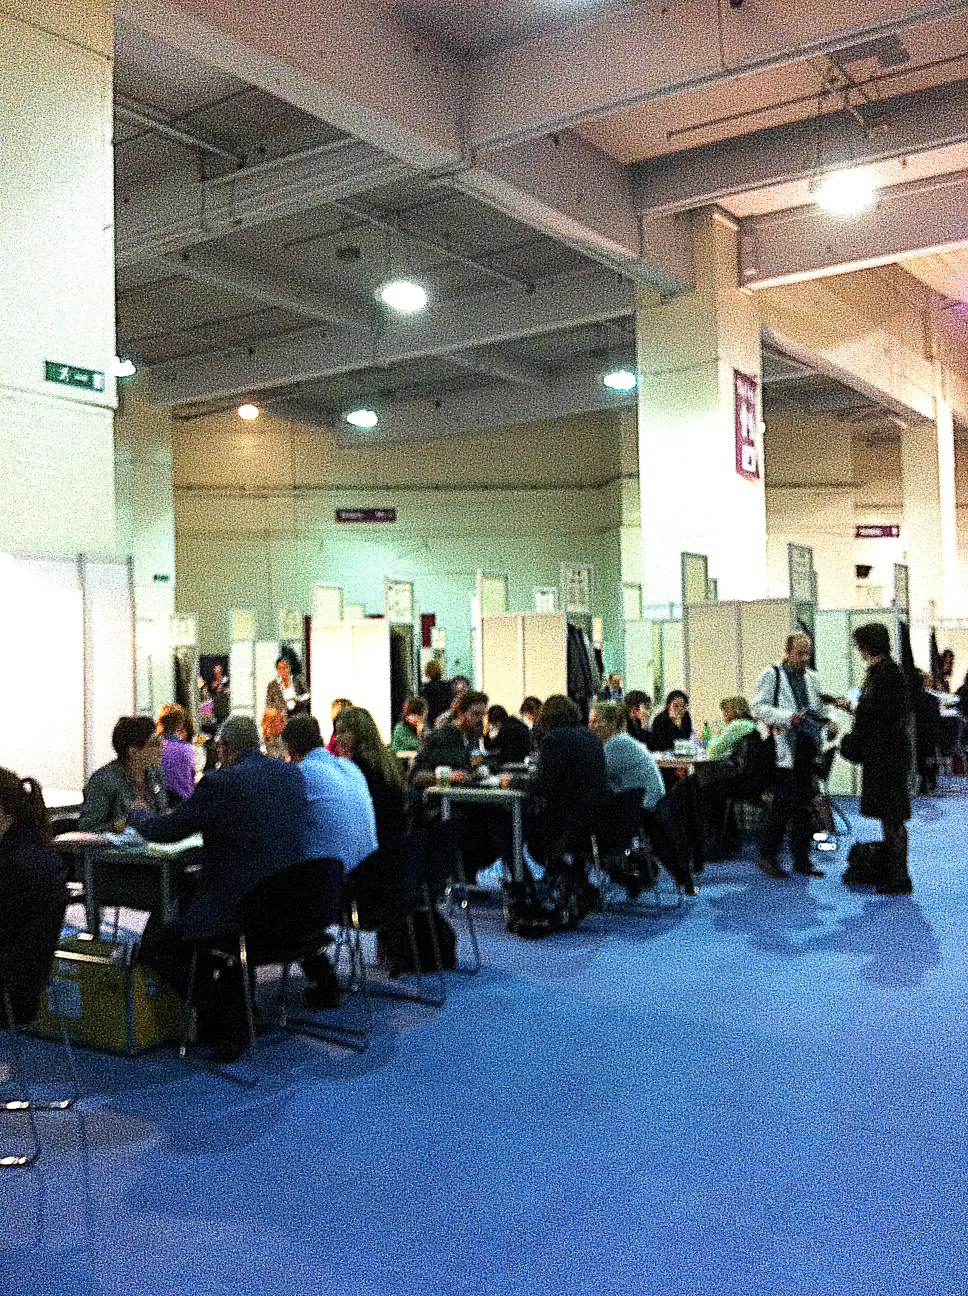 London Book Fair - upstairs in the Rights Centre - agents meet publishers at identical armies of tables